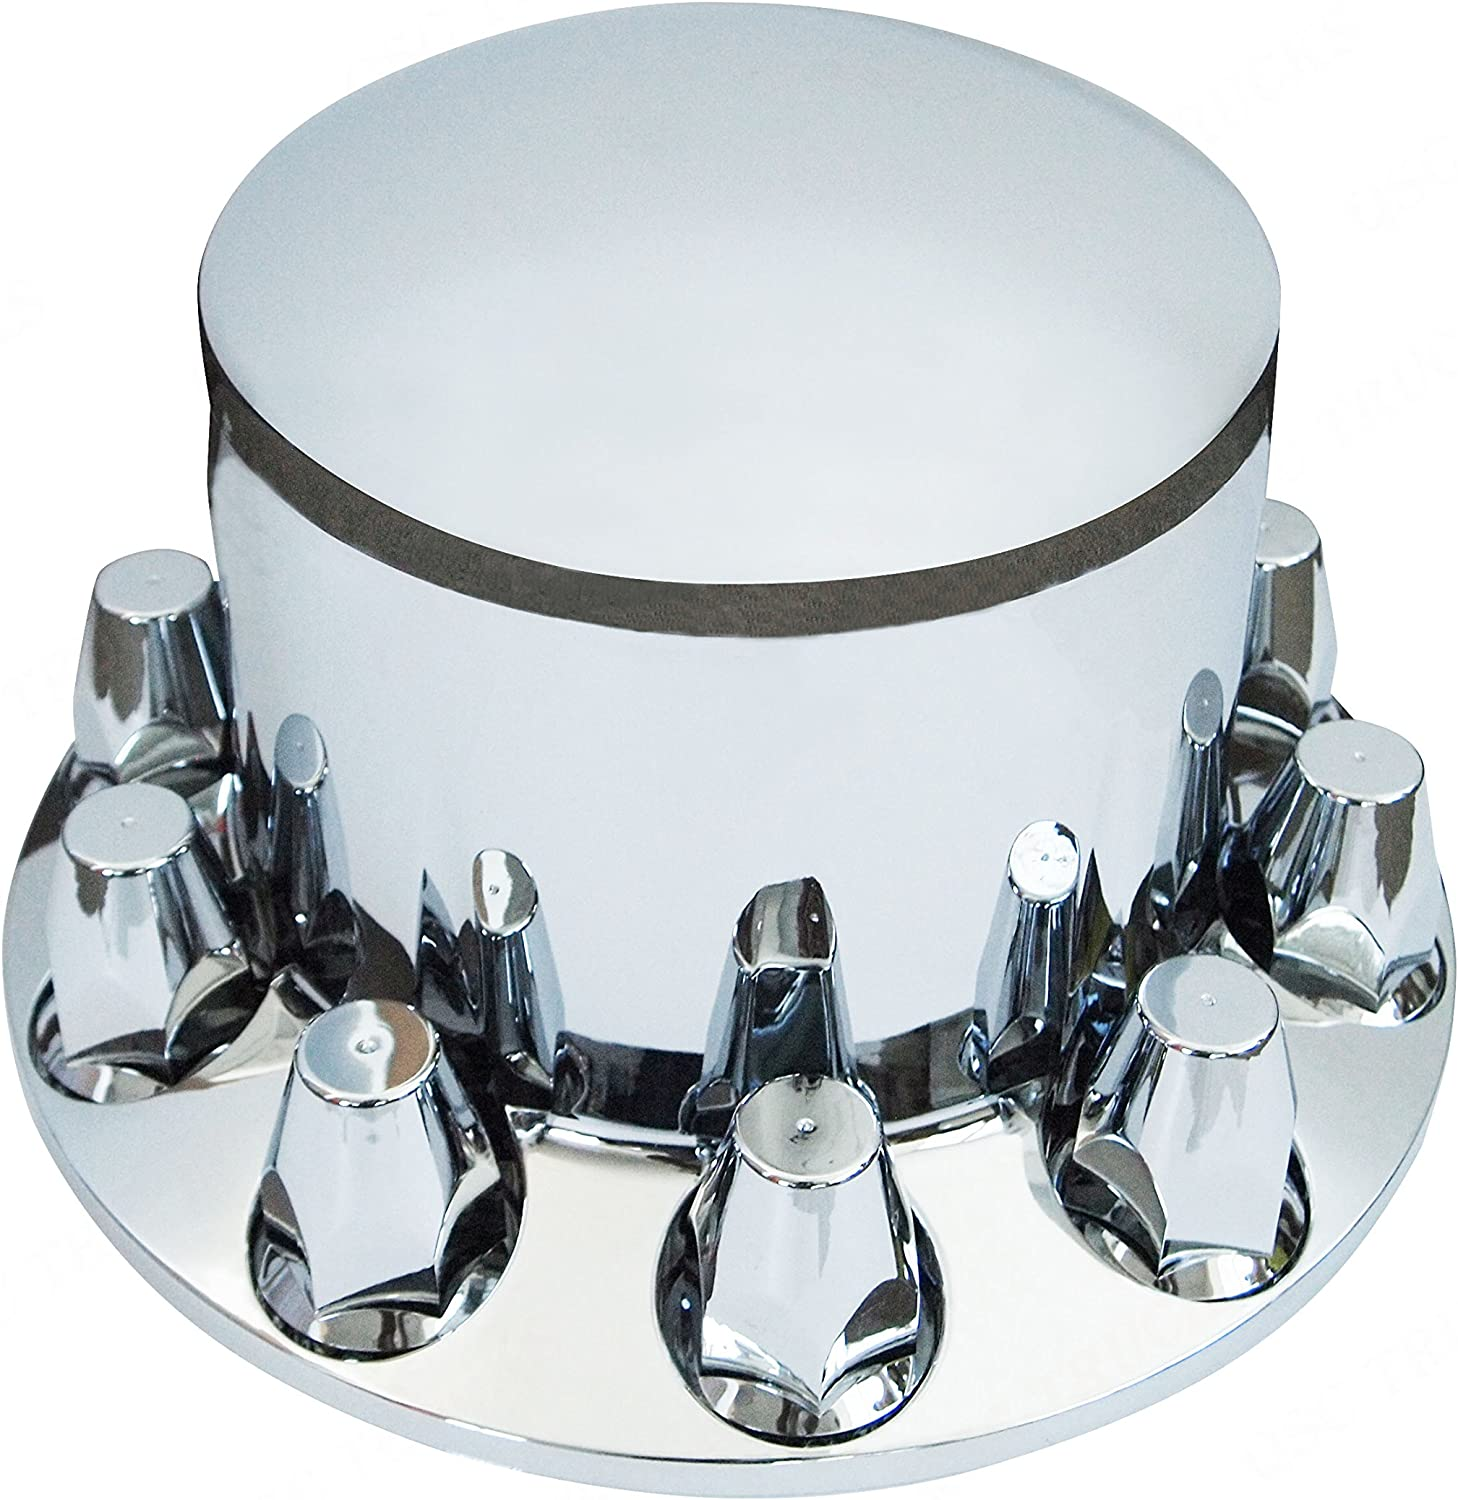 Wheel Cover Kit Chrome Front /& Rear Complete 33mm Lug Covers Semi Truck